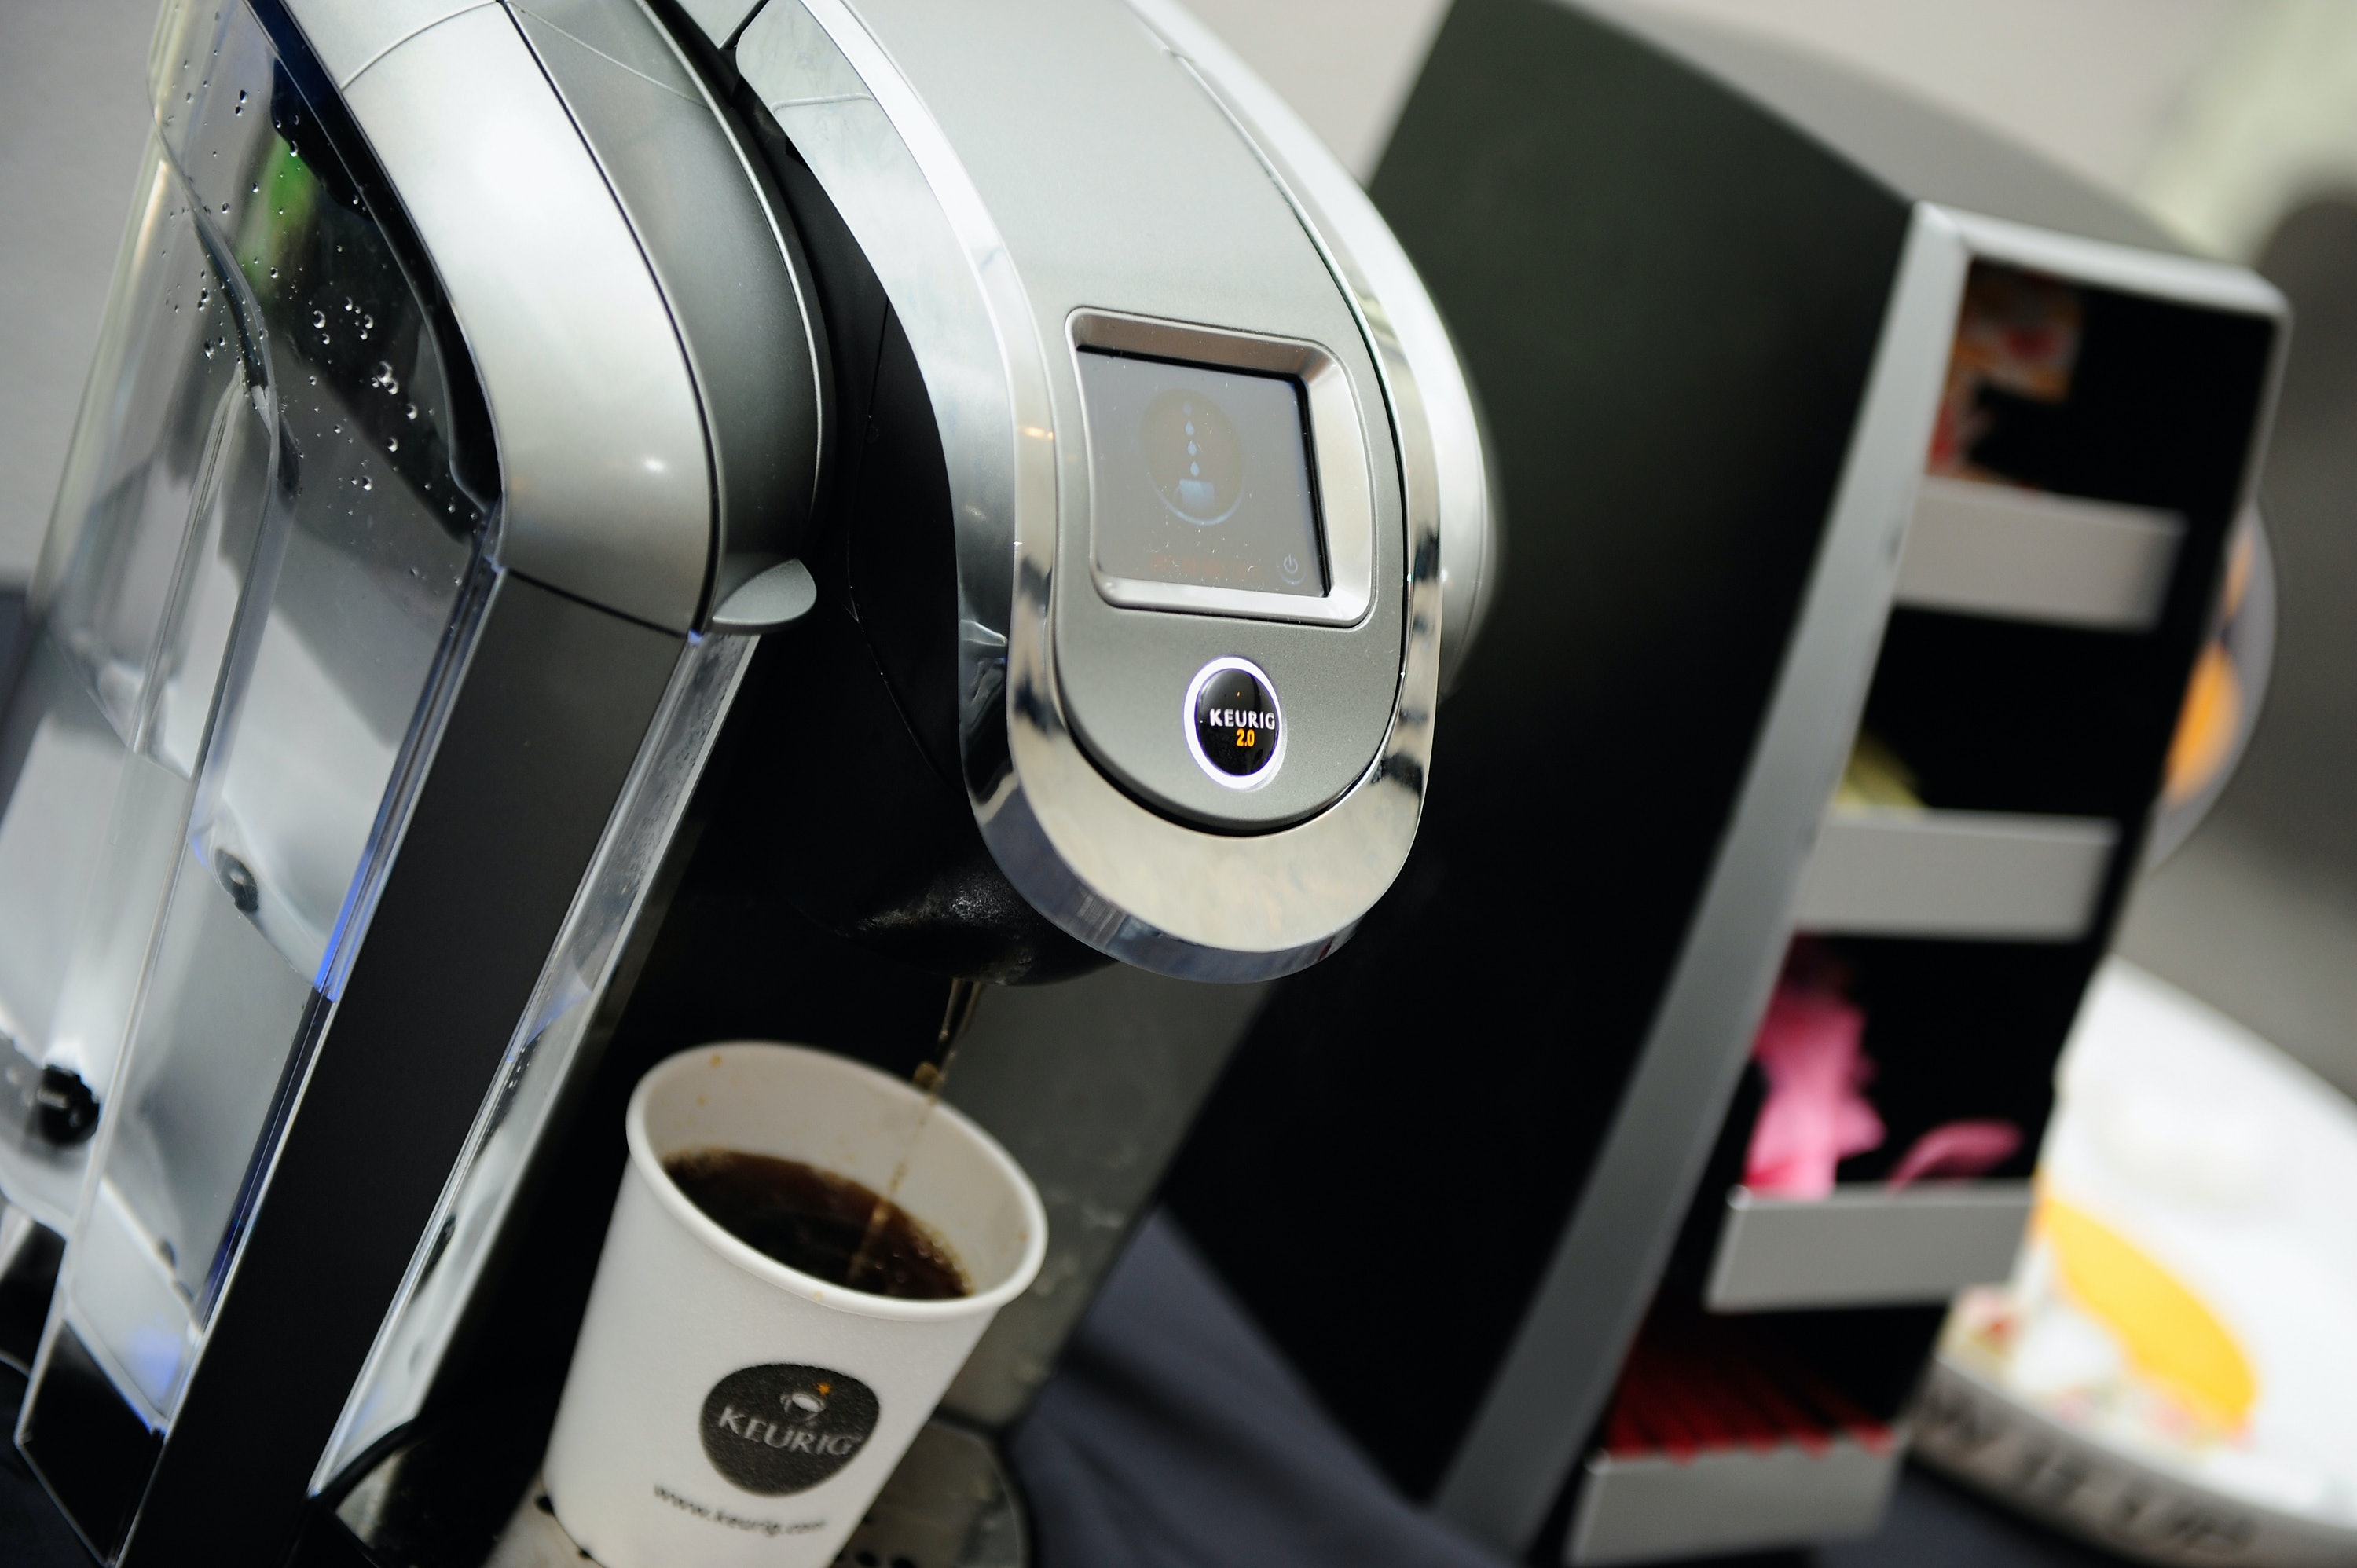 Keurig users are smashing their coffee makers in support of Fox News